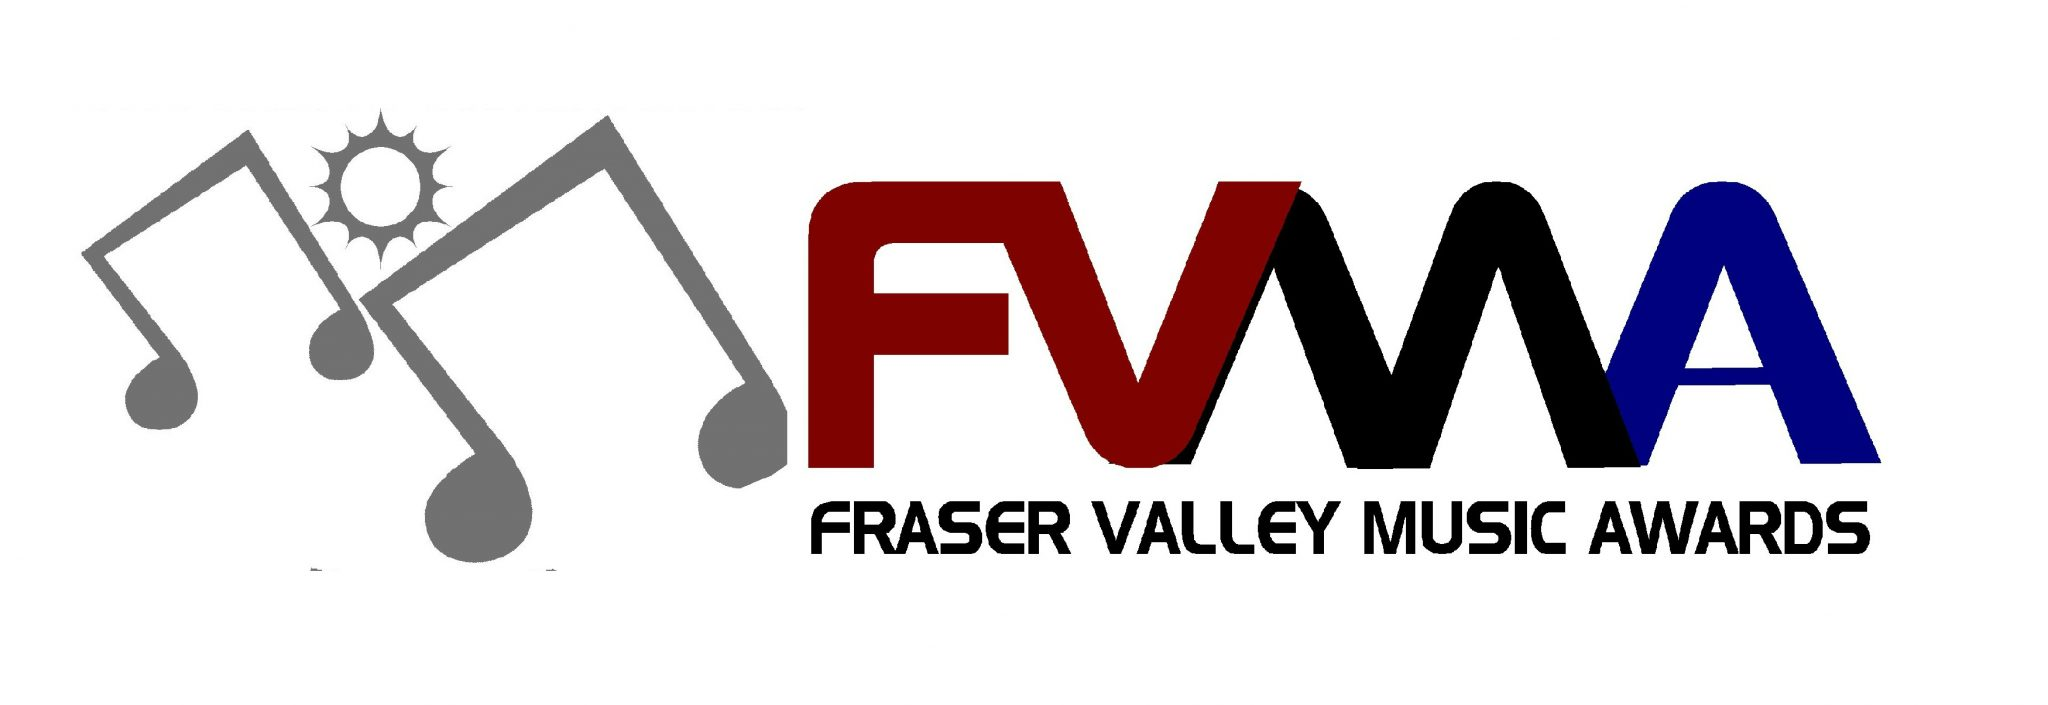 2018 FRASER VALLEY MUSIC AWARDS APPLICATIONS NOW OPEN